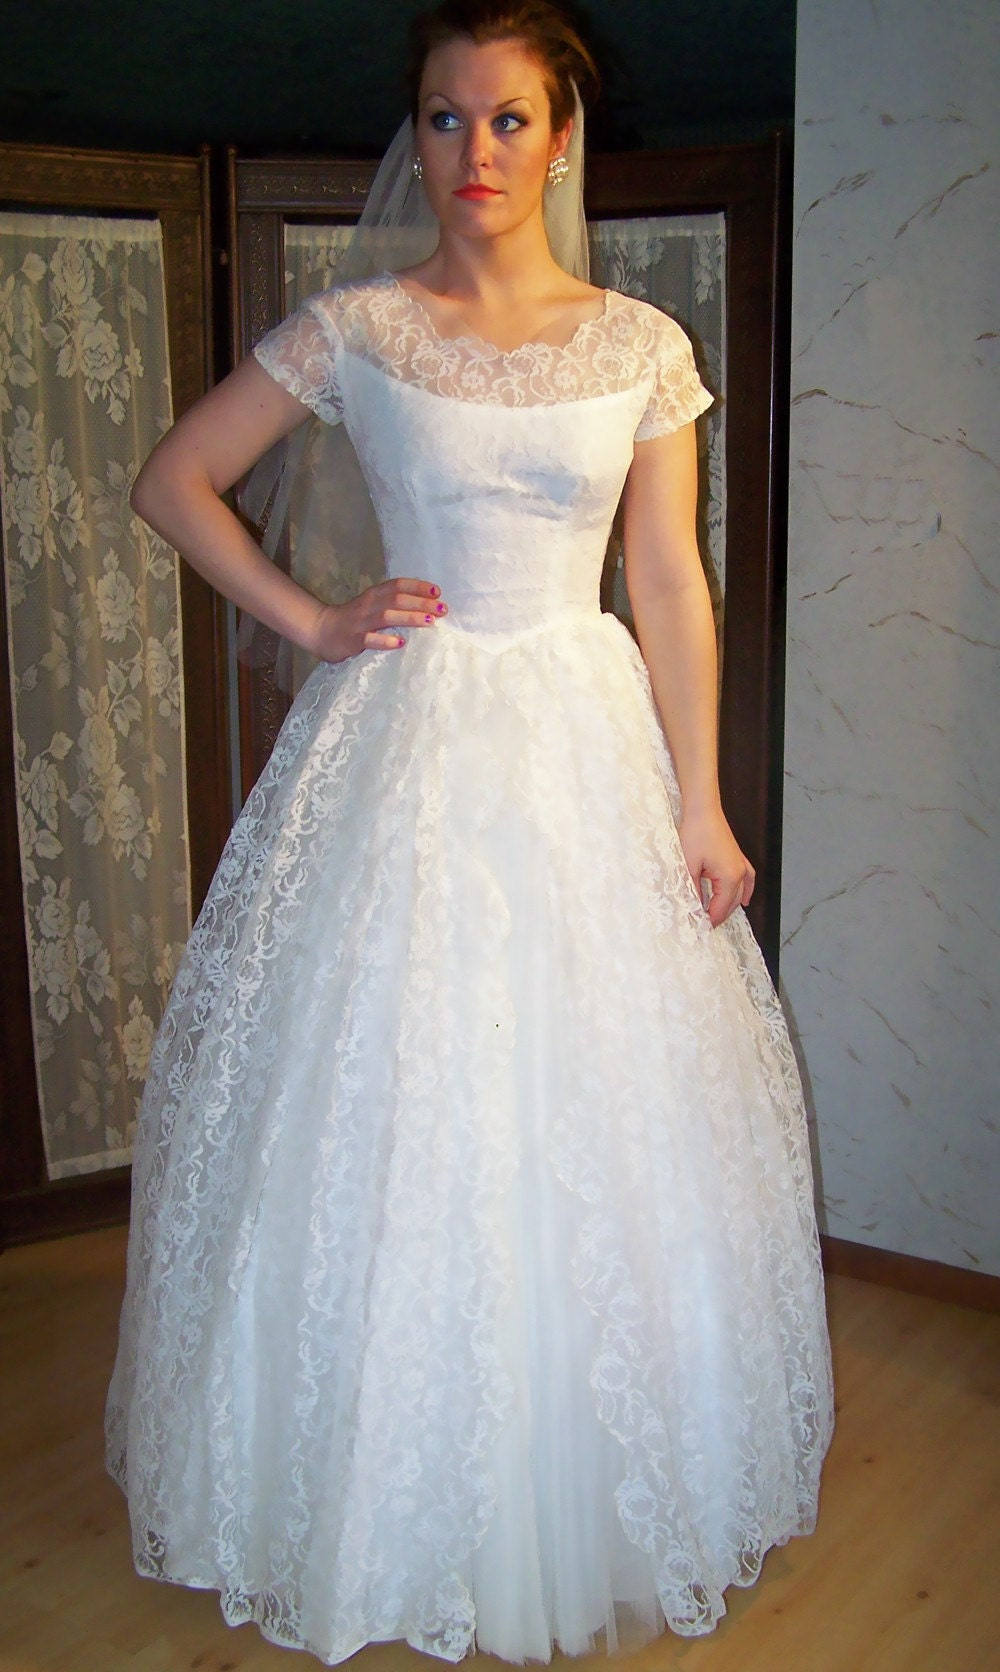 APRIL LOVE 1950s WHITE VINTAGE WEDDING GOWN WITH CHANTILLY LACE WITH TULLE PLEATING ACCENT